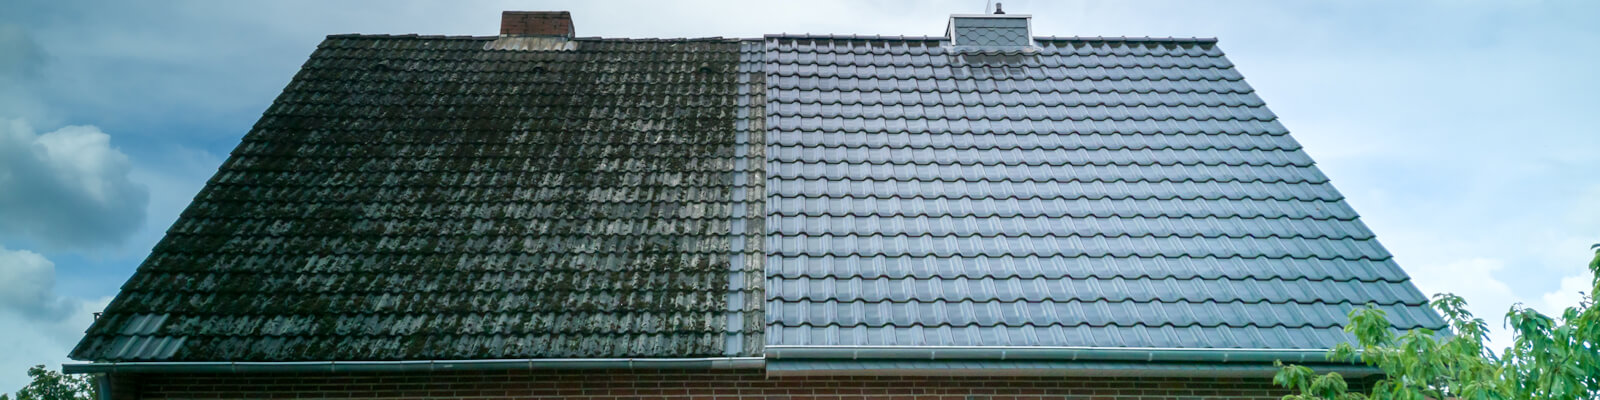 A half cleaned house roof shows the before and after effect of a roof cleaning